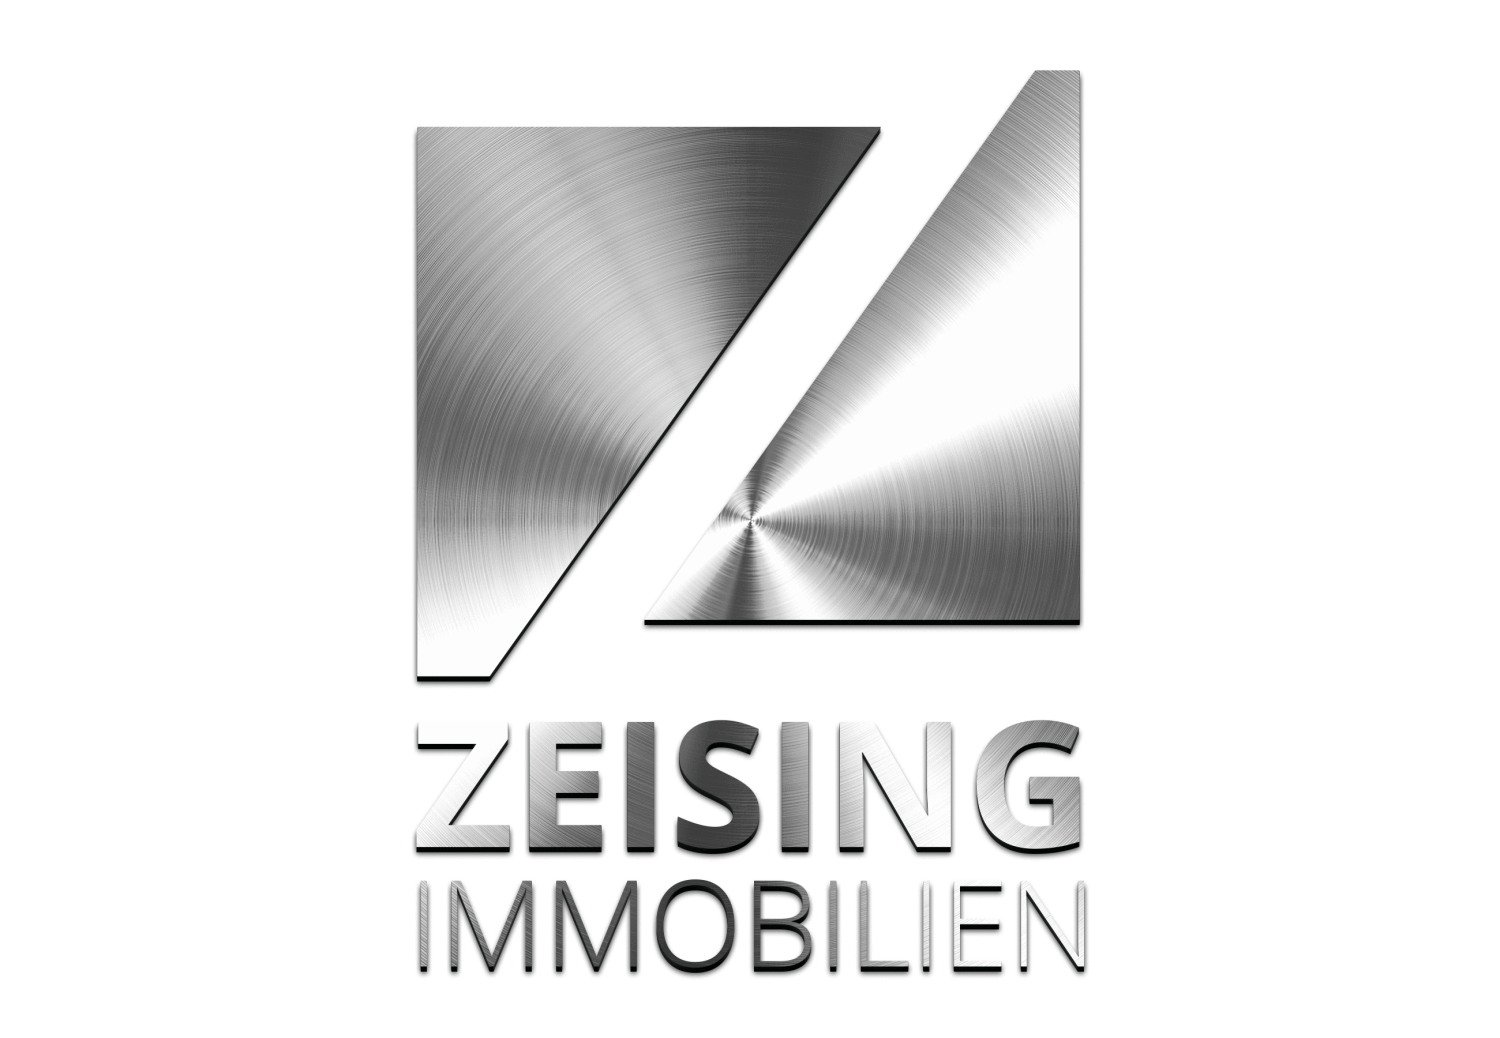 Zeising Real Estate Immobilien